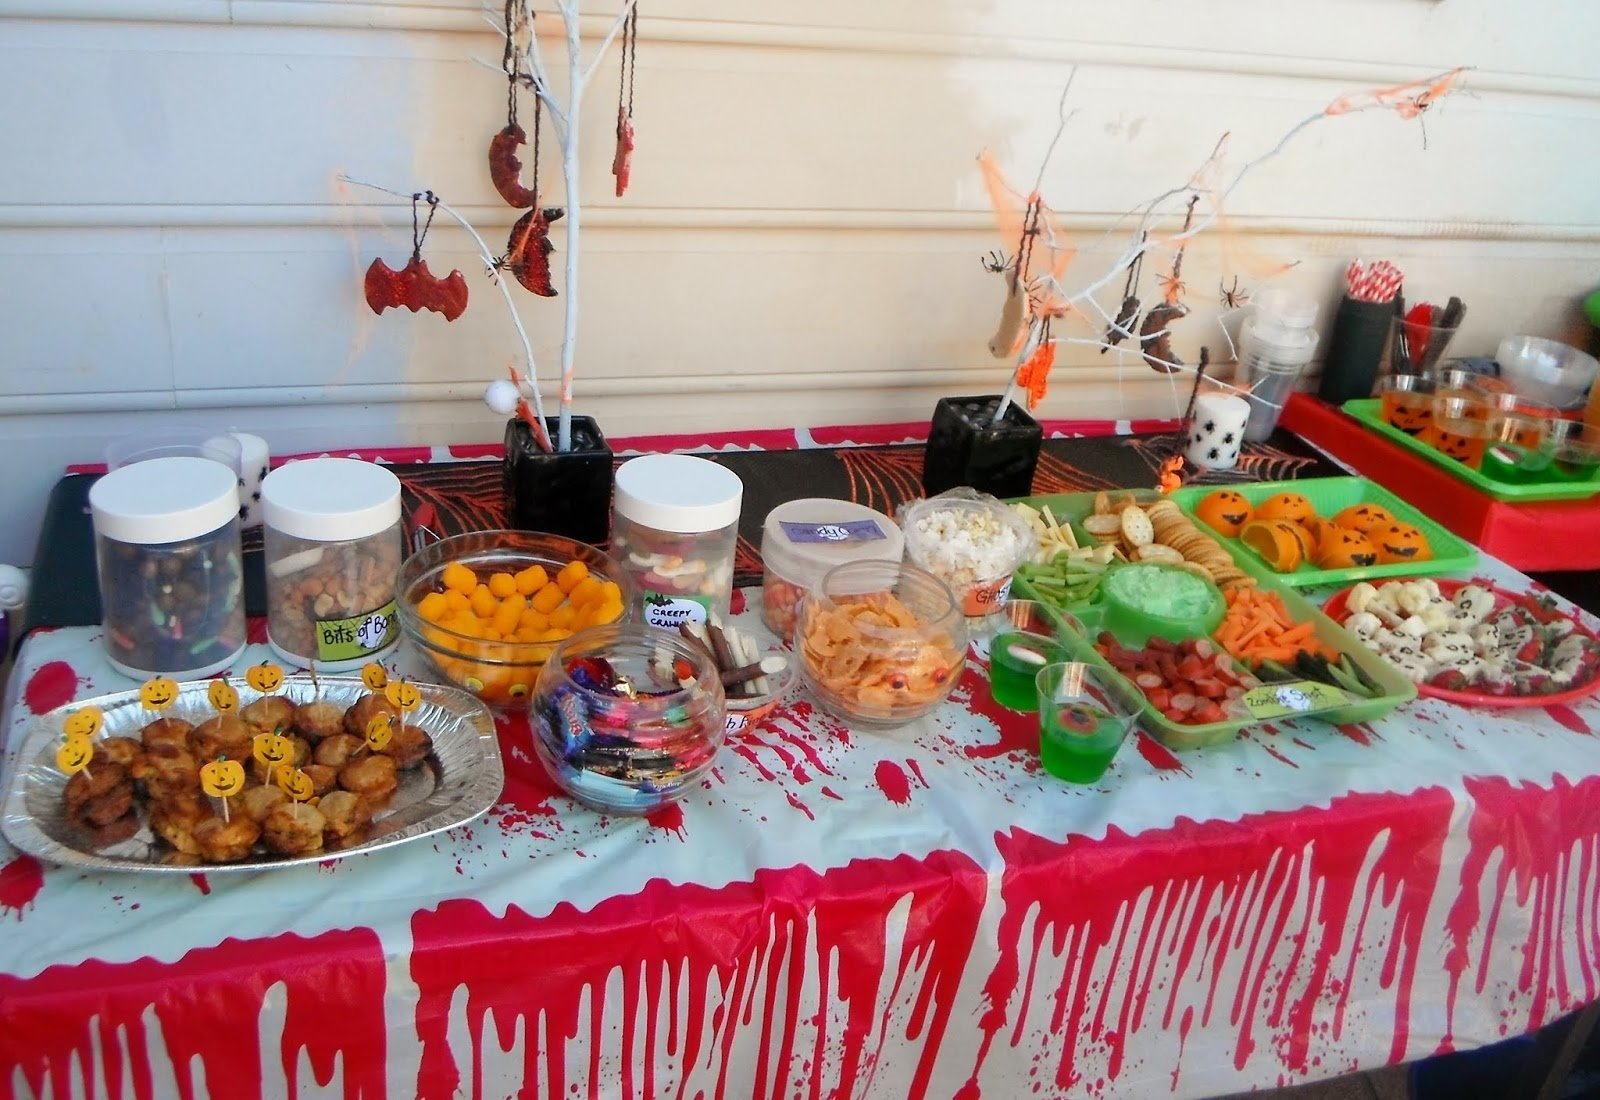 10 Trendy Halloween Birthday Party Ideas For Kids adventures at home with mum halloween party food 1 2021